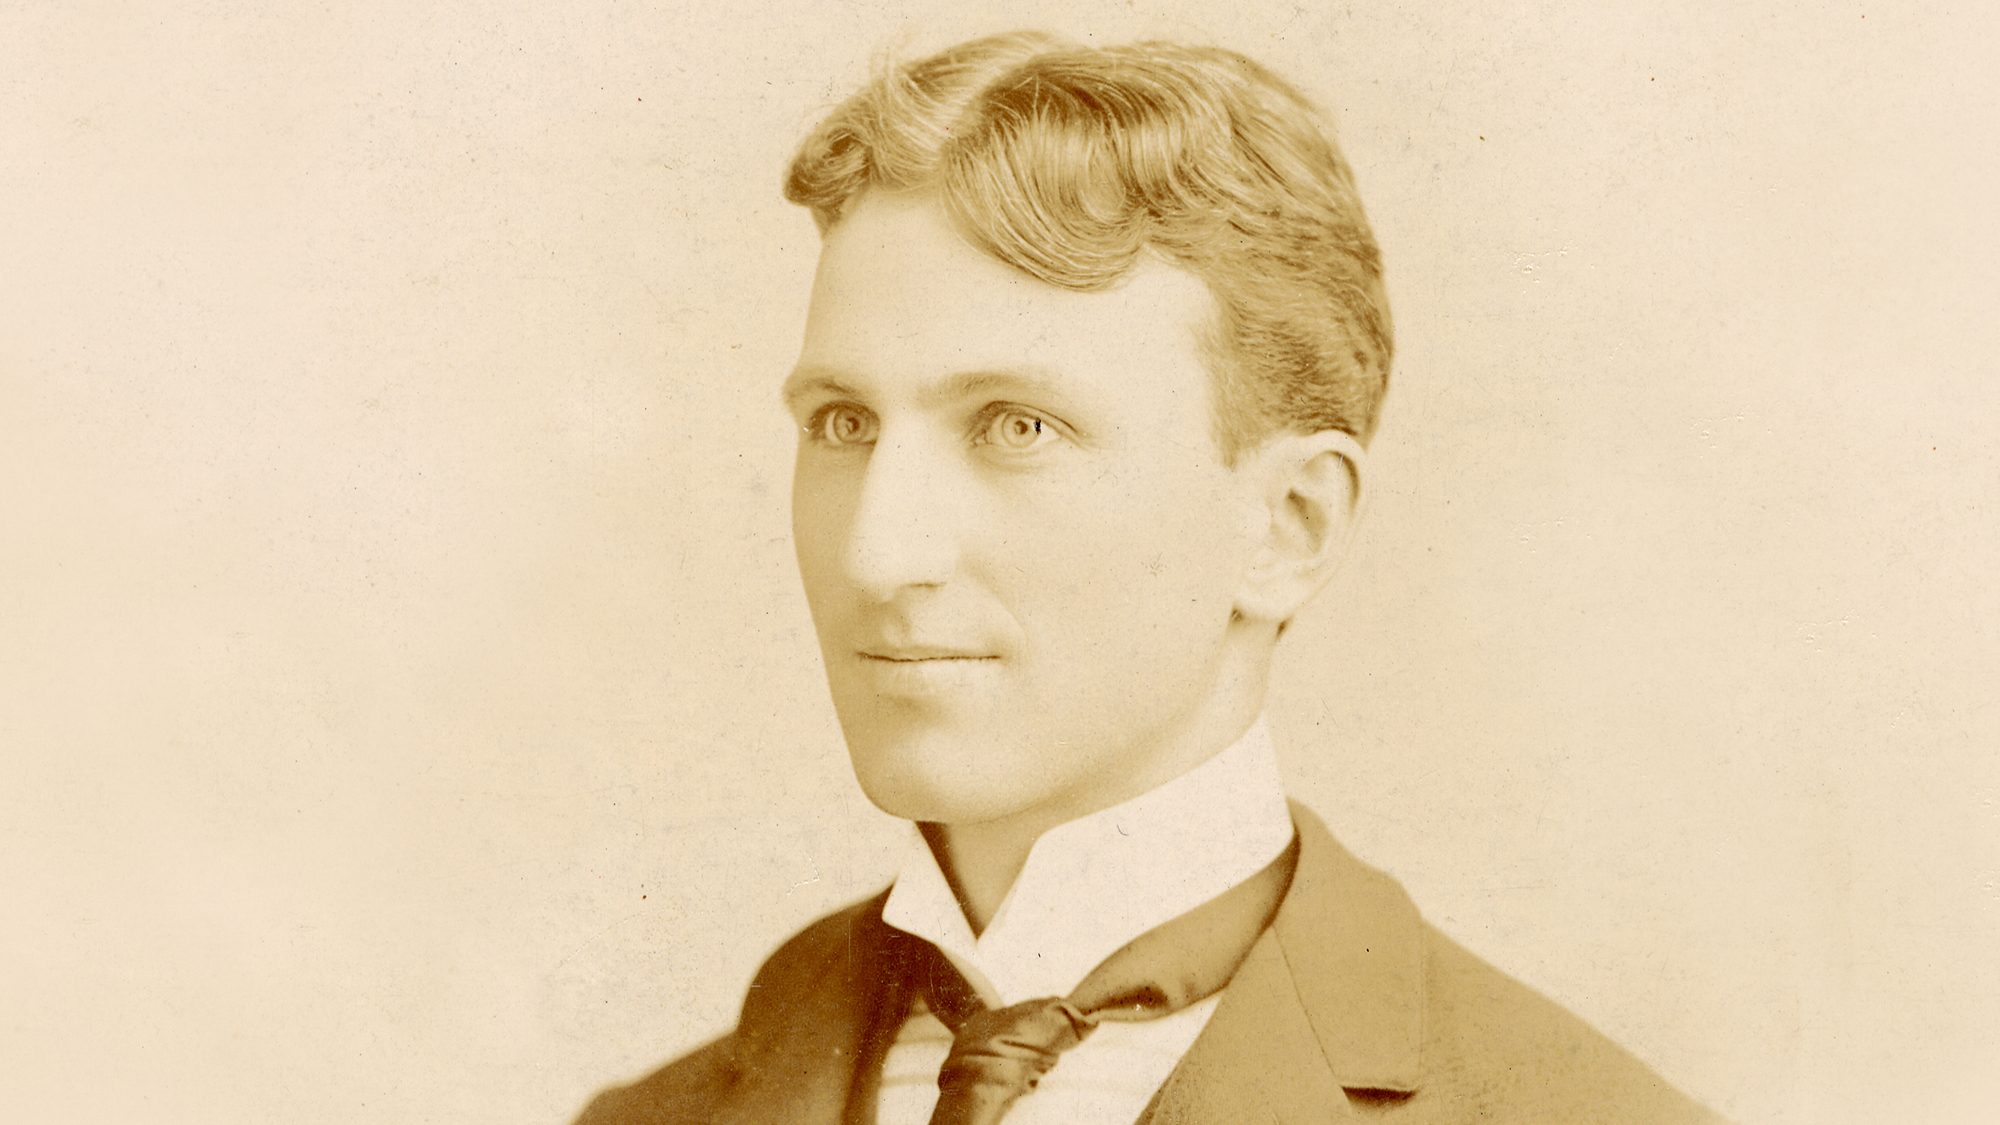 Herbert F. Johnson, Sr. joins the family company business in 1892